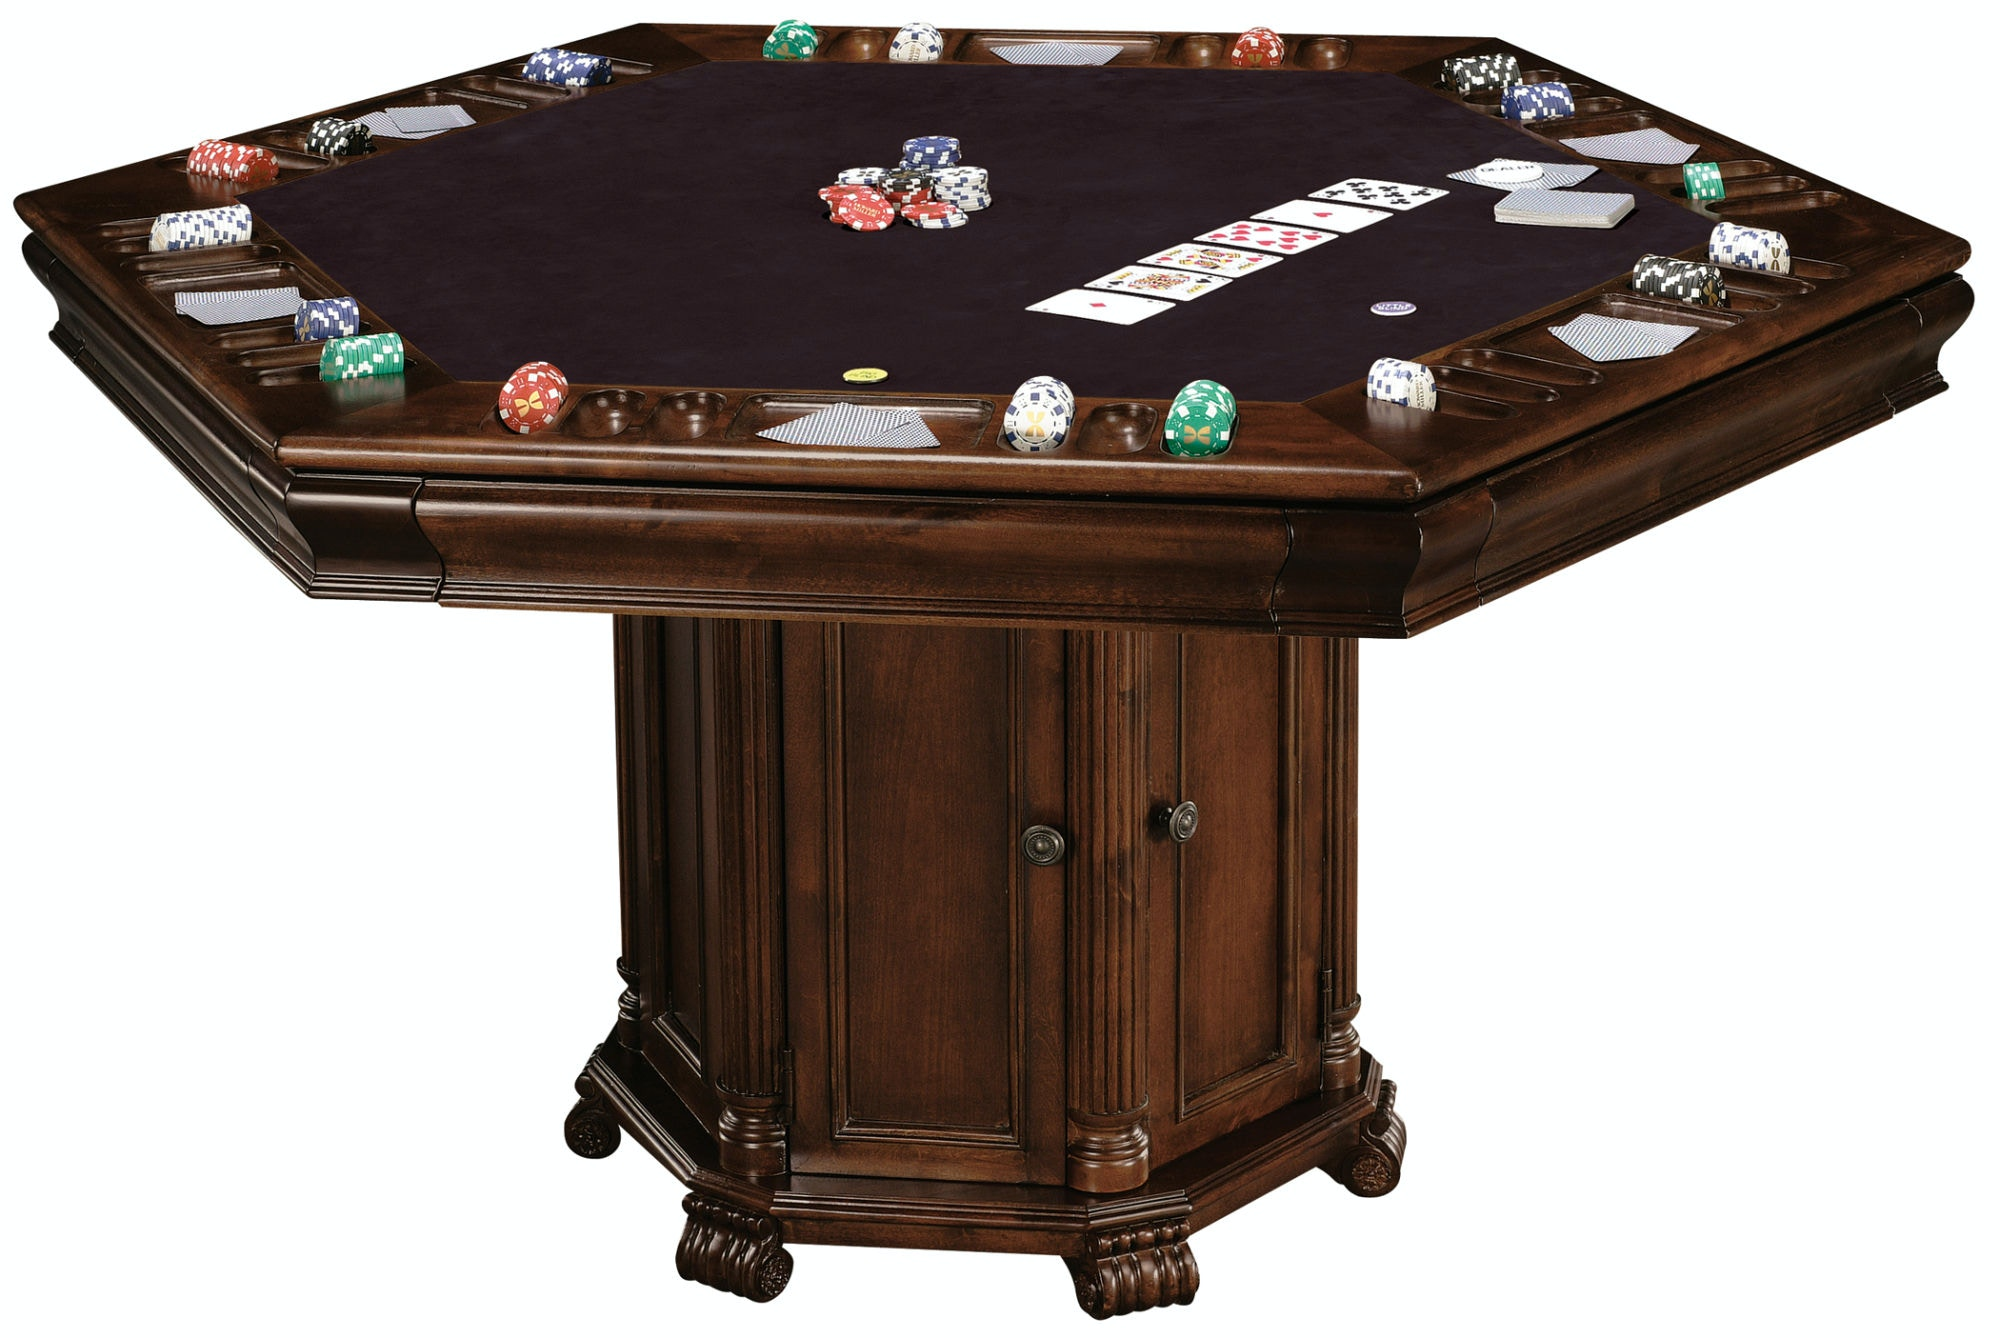 howard miller bar and game room niagara game table wine cabinet bar rh simsfurniture com red barrel studio media cabinet red barrel studio multimedia cabinet